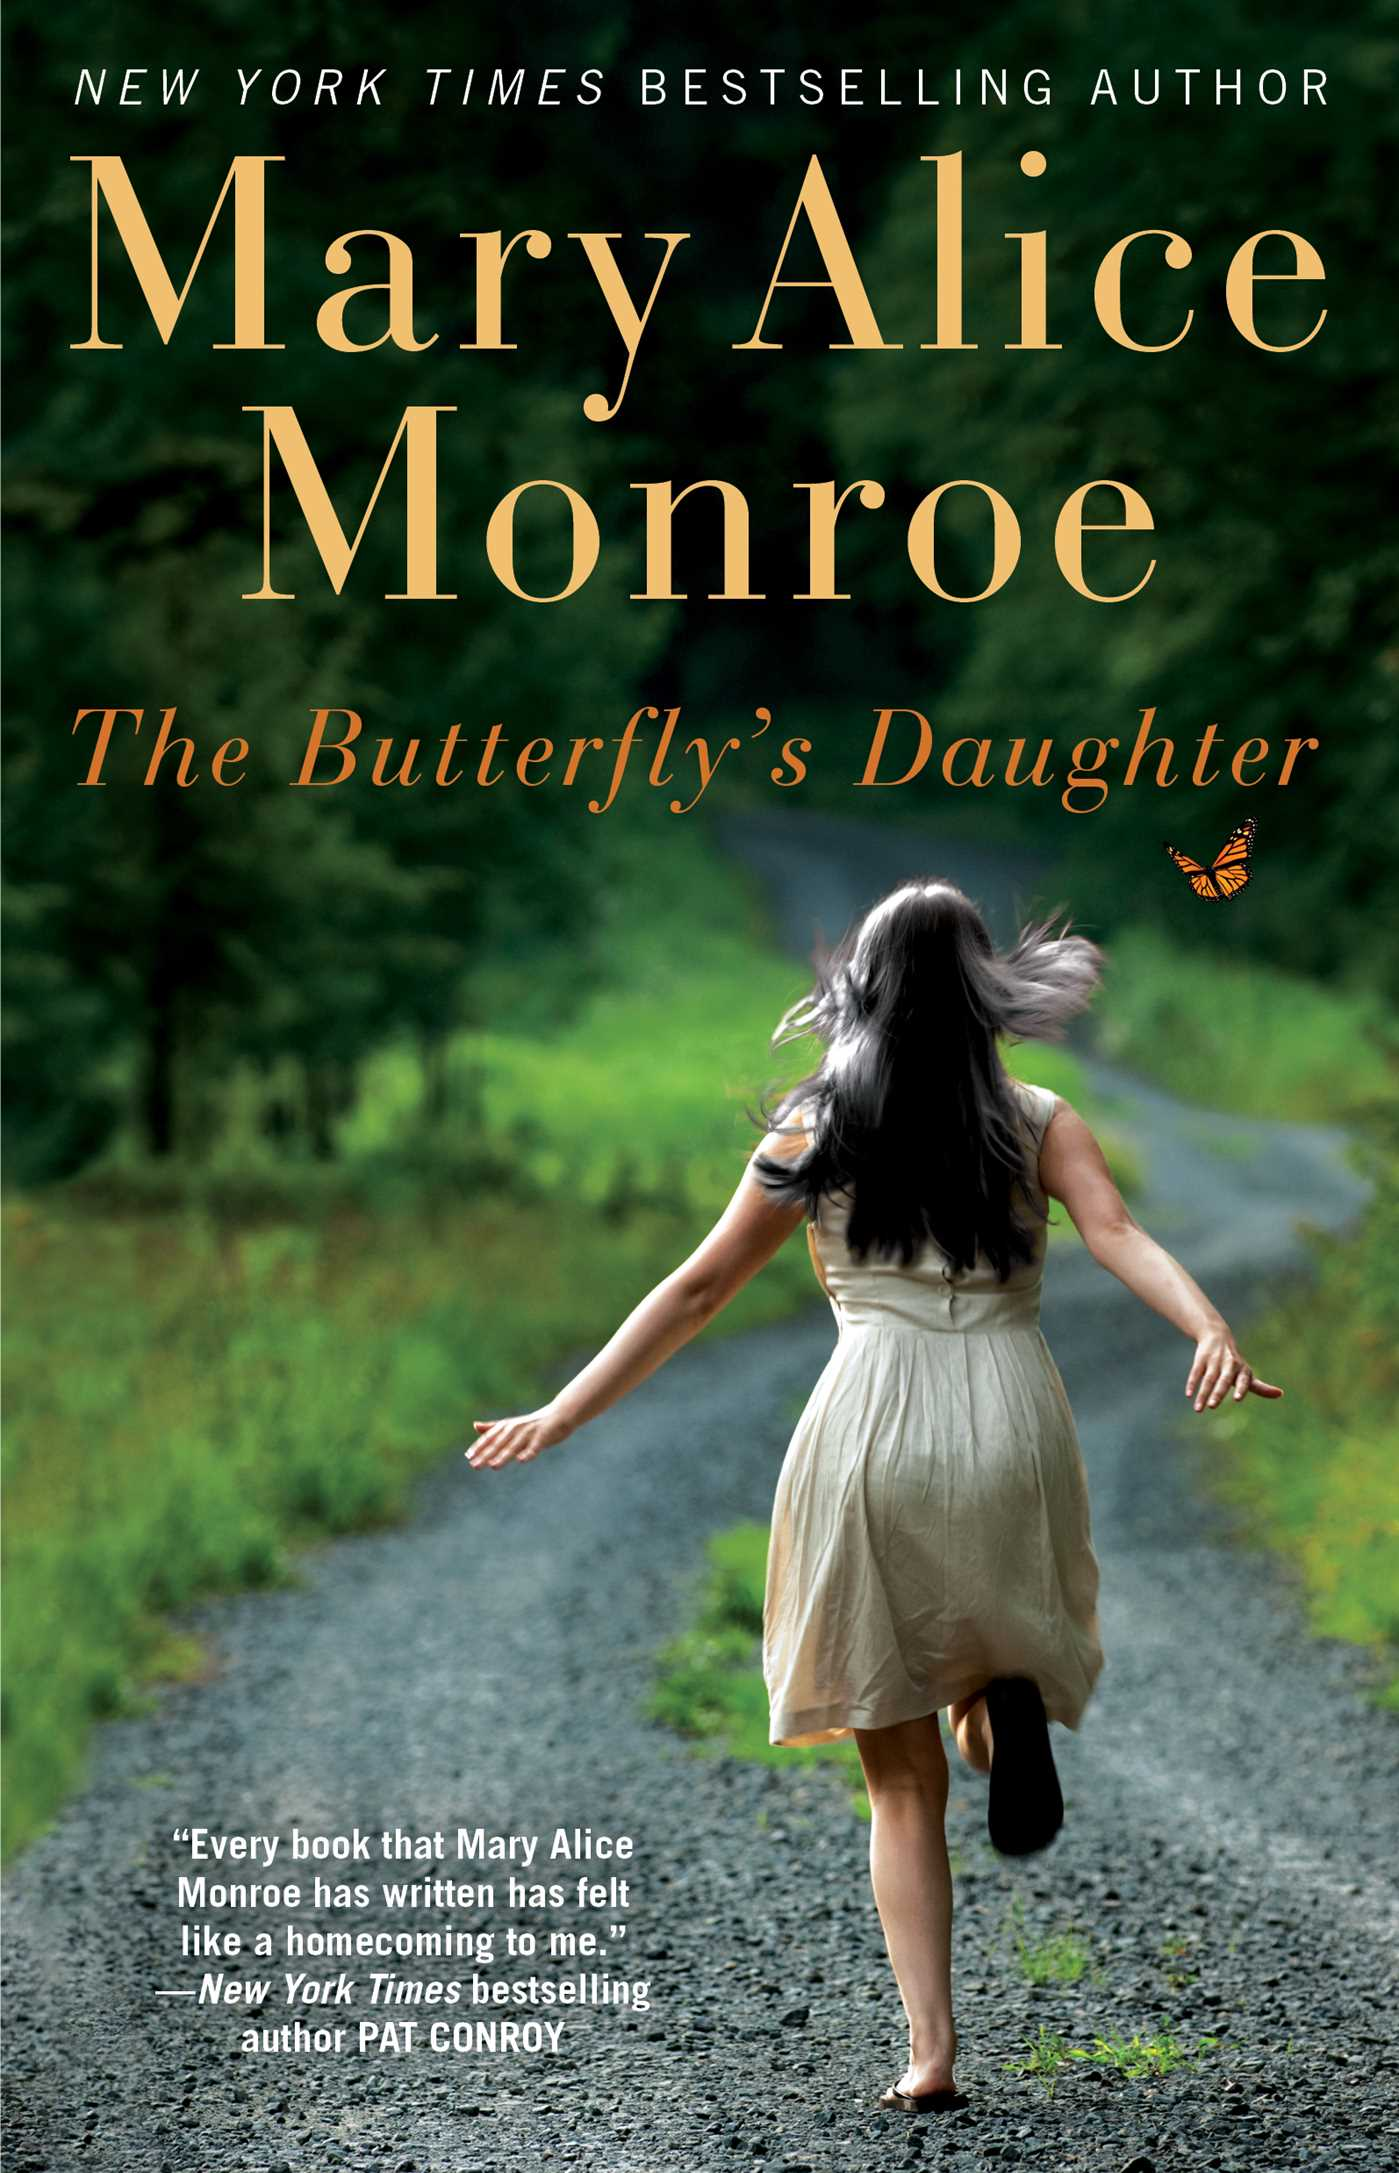 Butterflys-daughter-9781439171028_hr